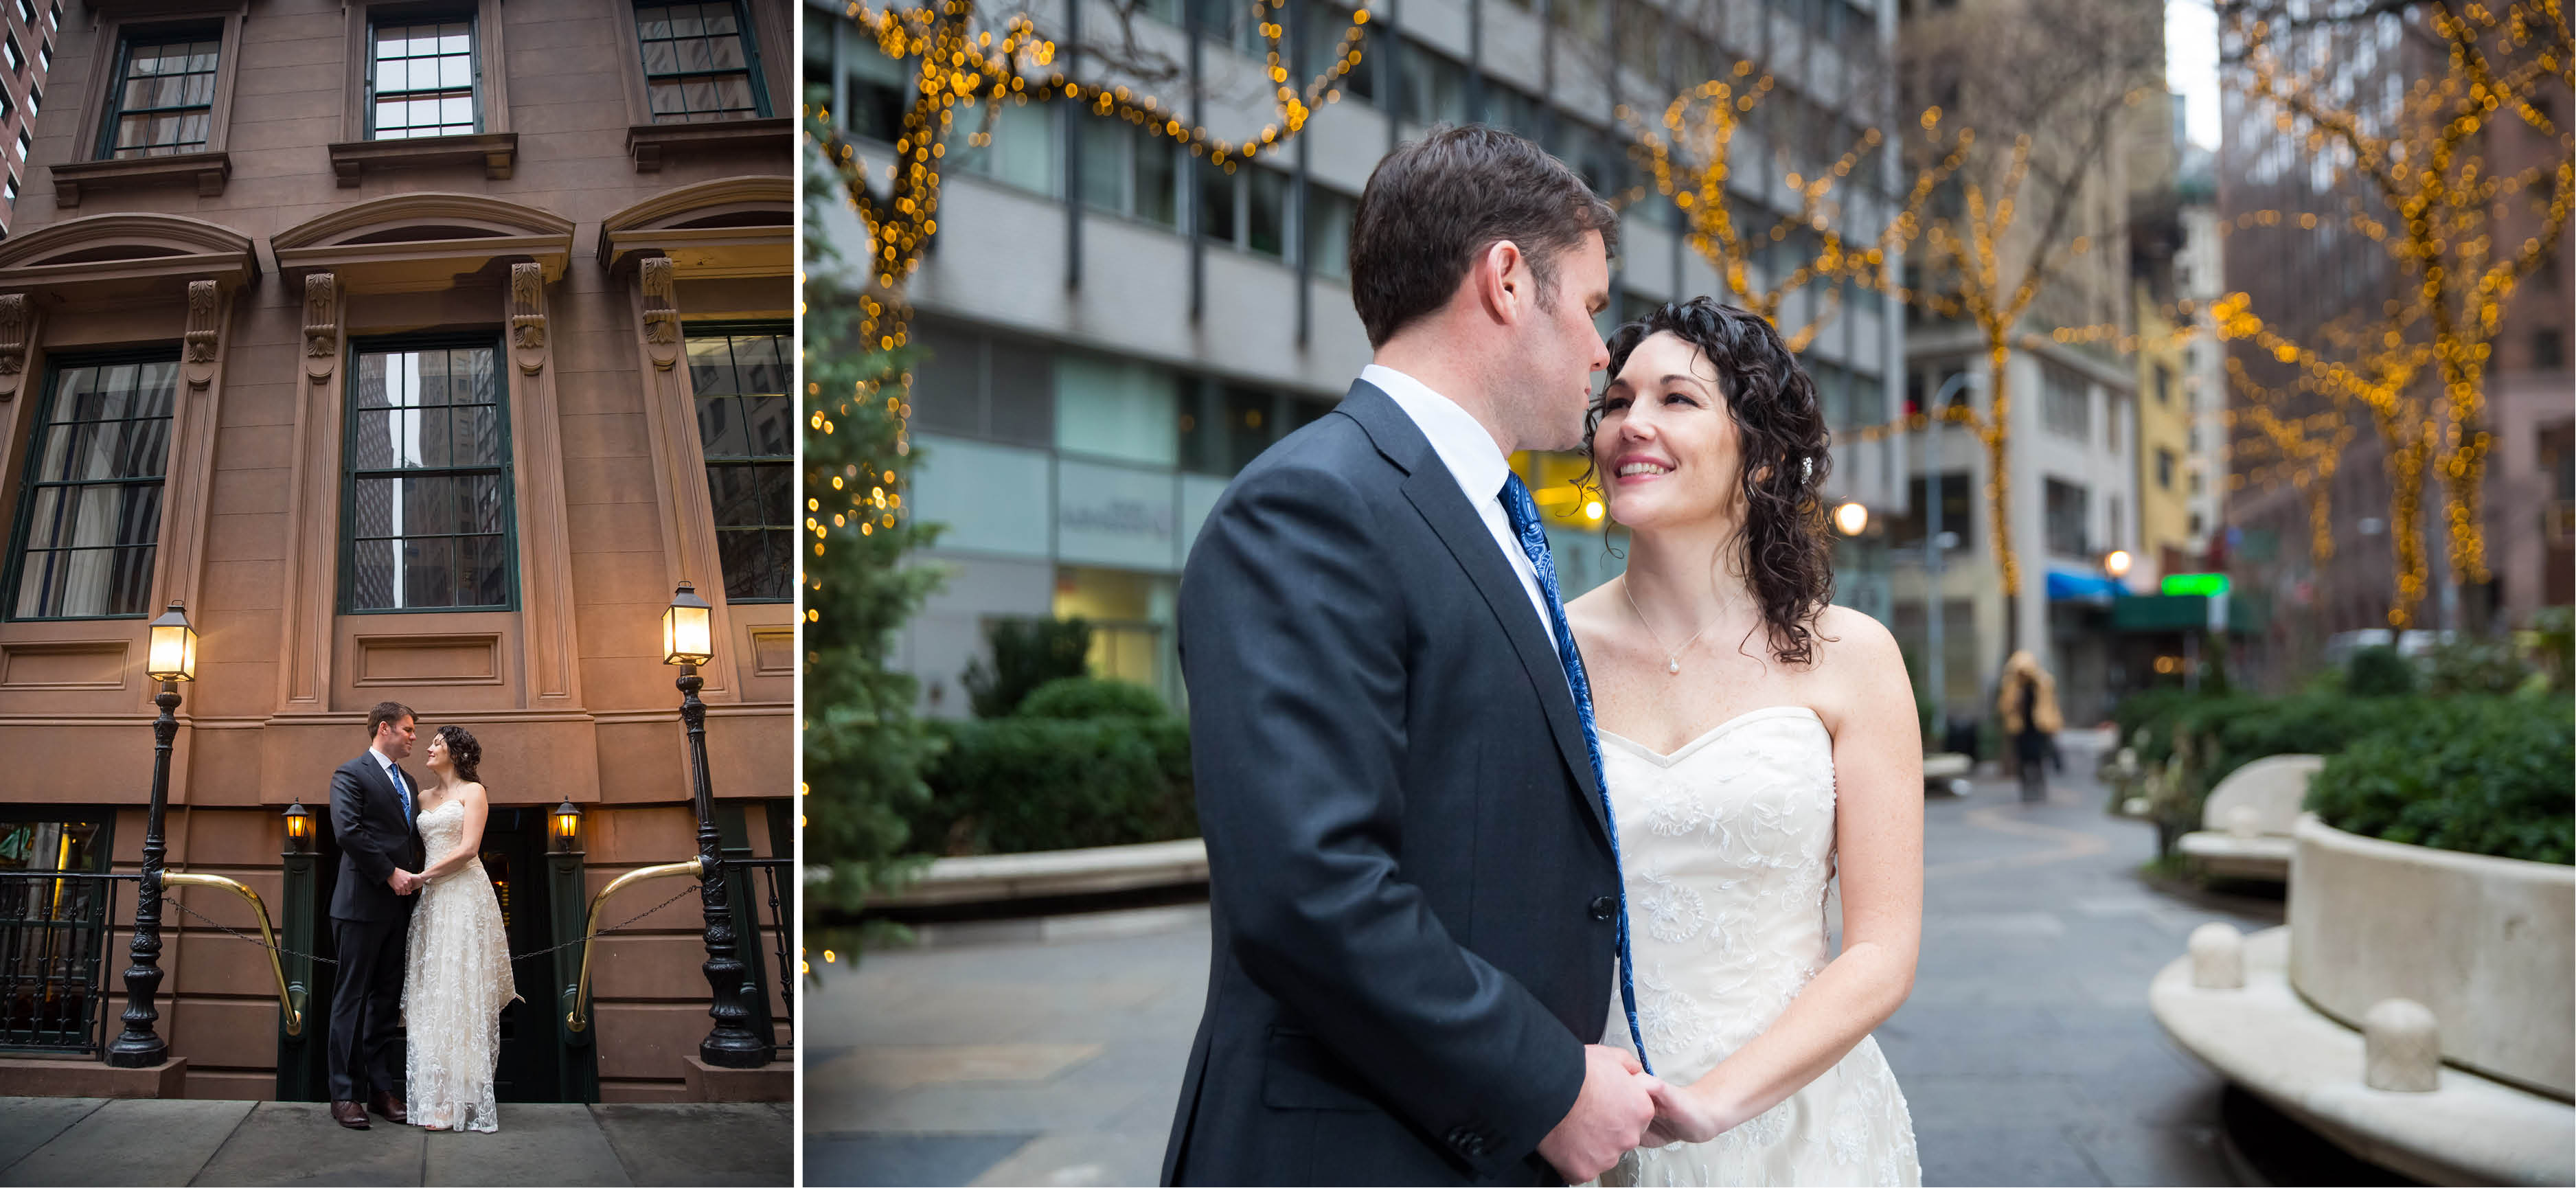 Emma_cleary_photography India House NY wedding4